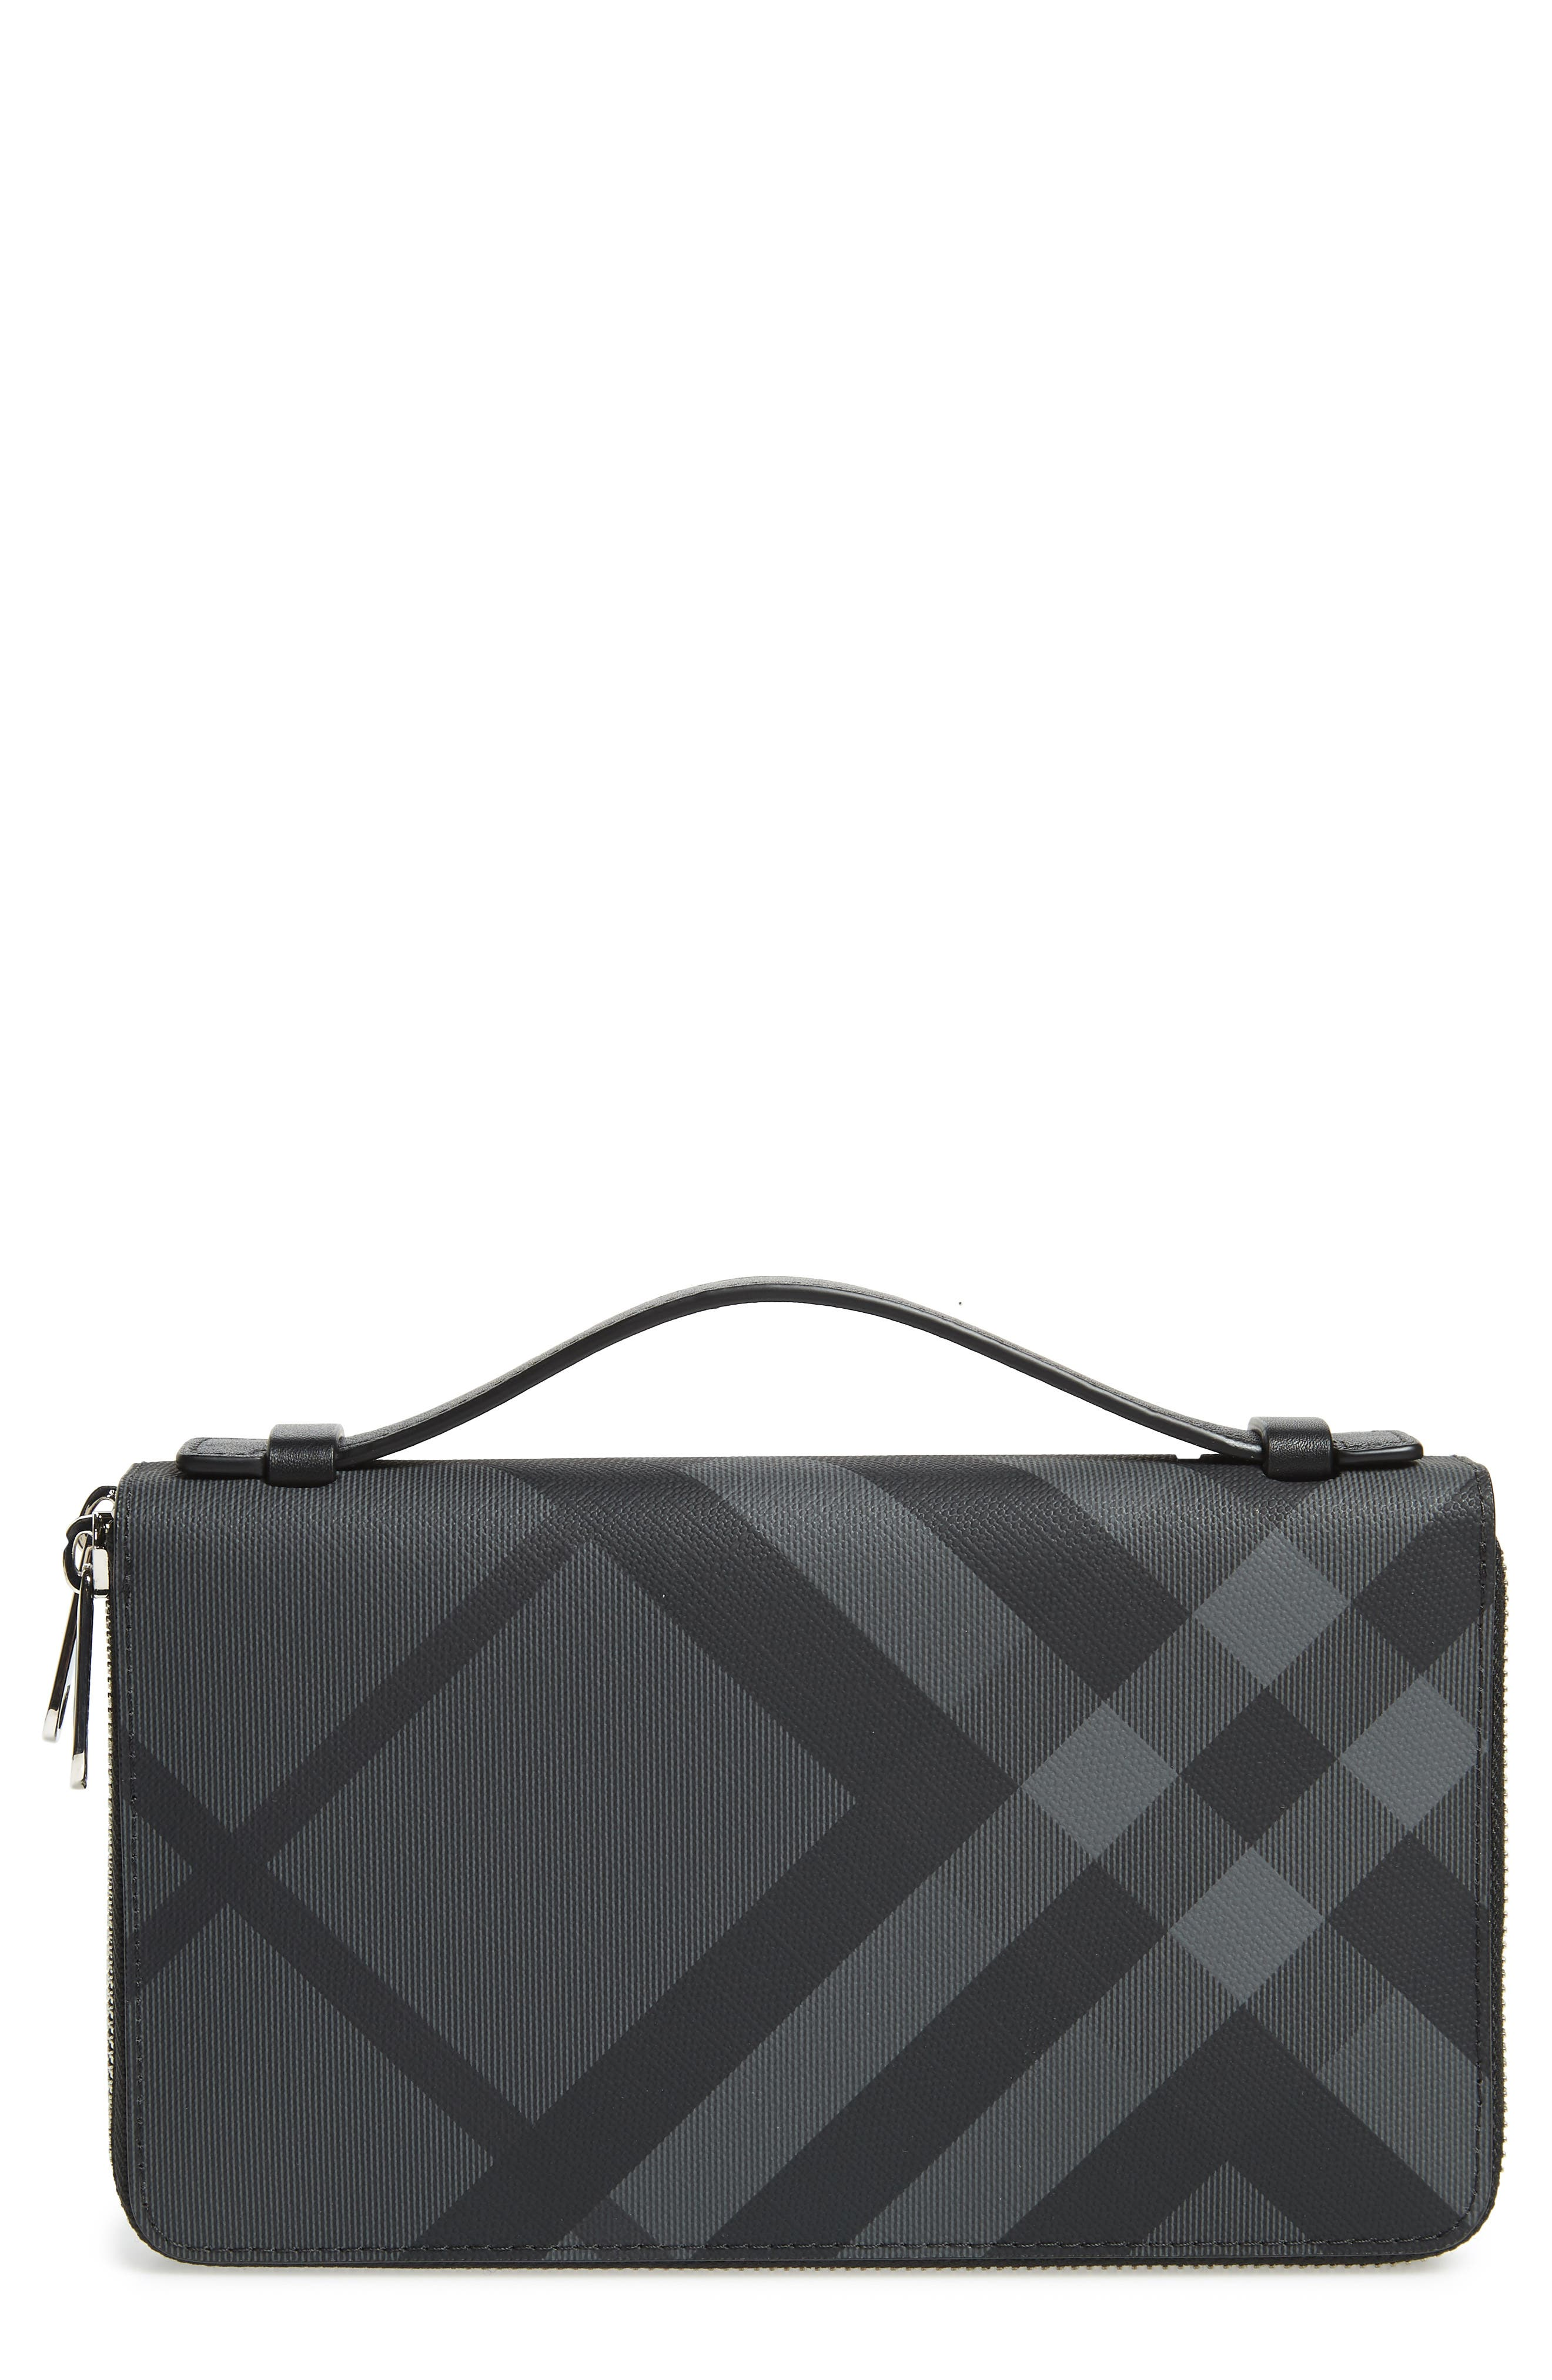 BURBERRY,                             Reeves Zip Wallet,                             Main thumbnail 1, color,                             CHARCOAL BLACK